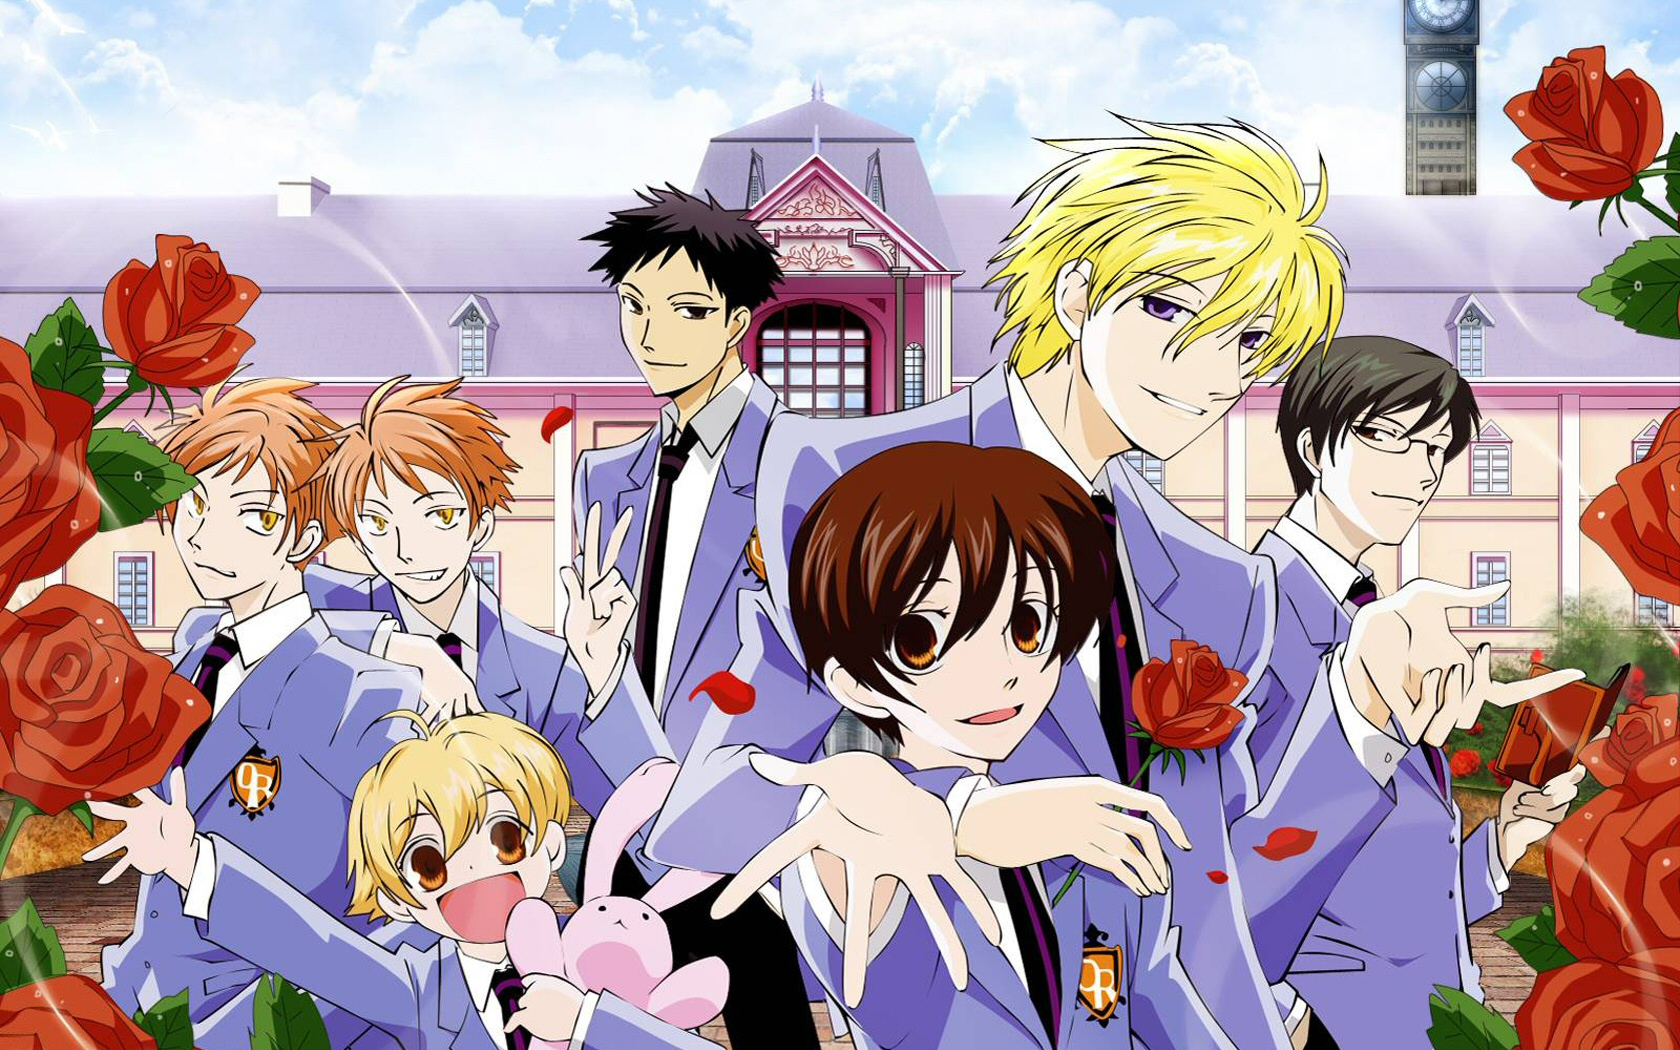 Ouran High School Host Club Images Highschool HD Wallpaper And Background Photos